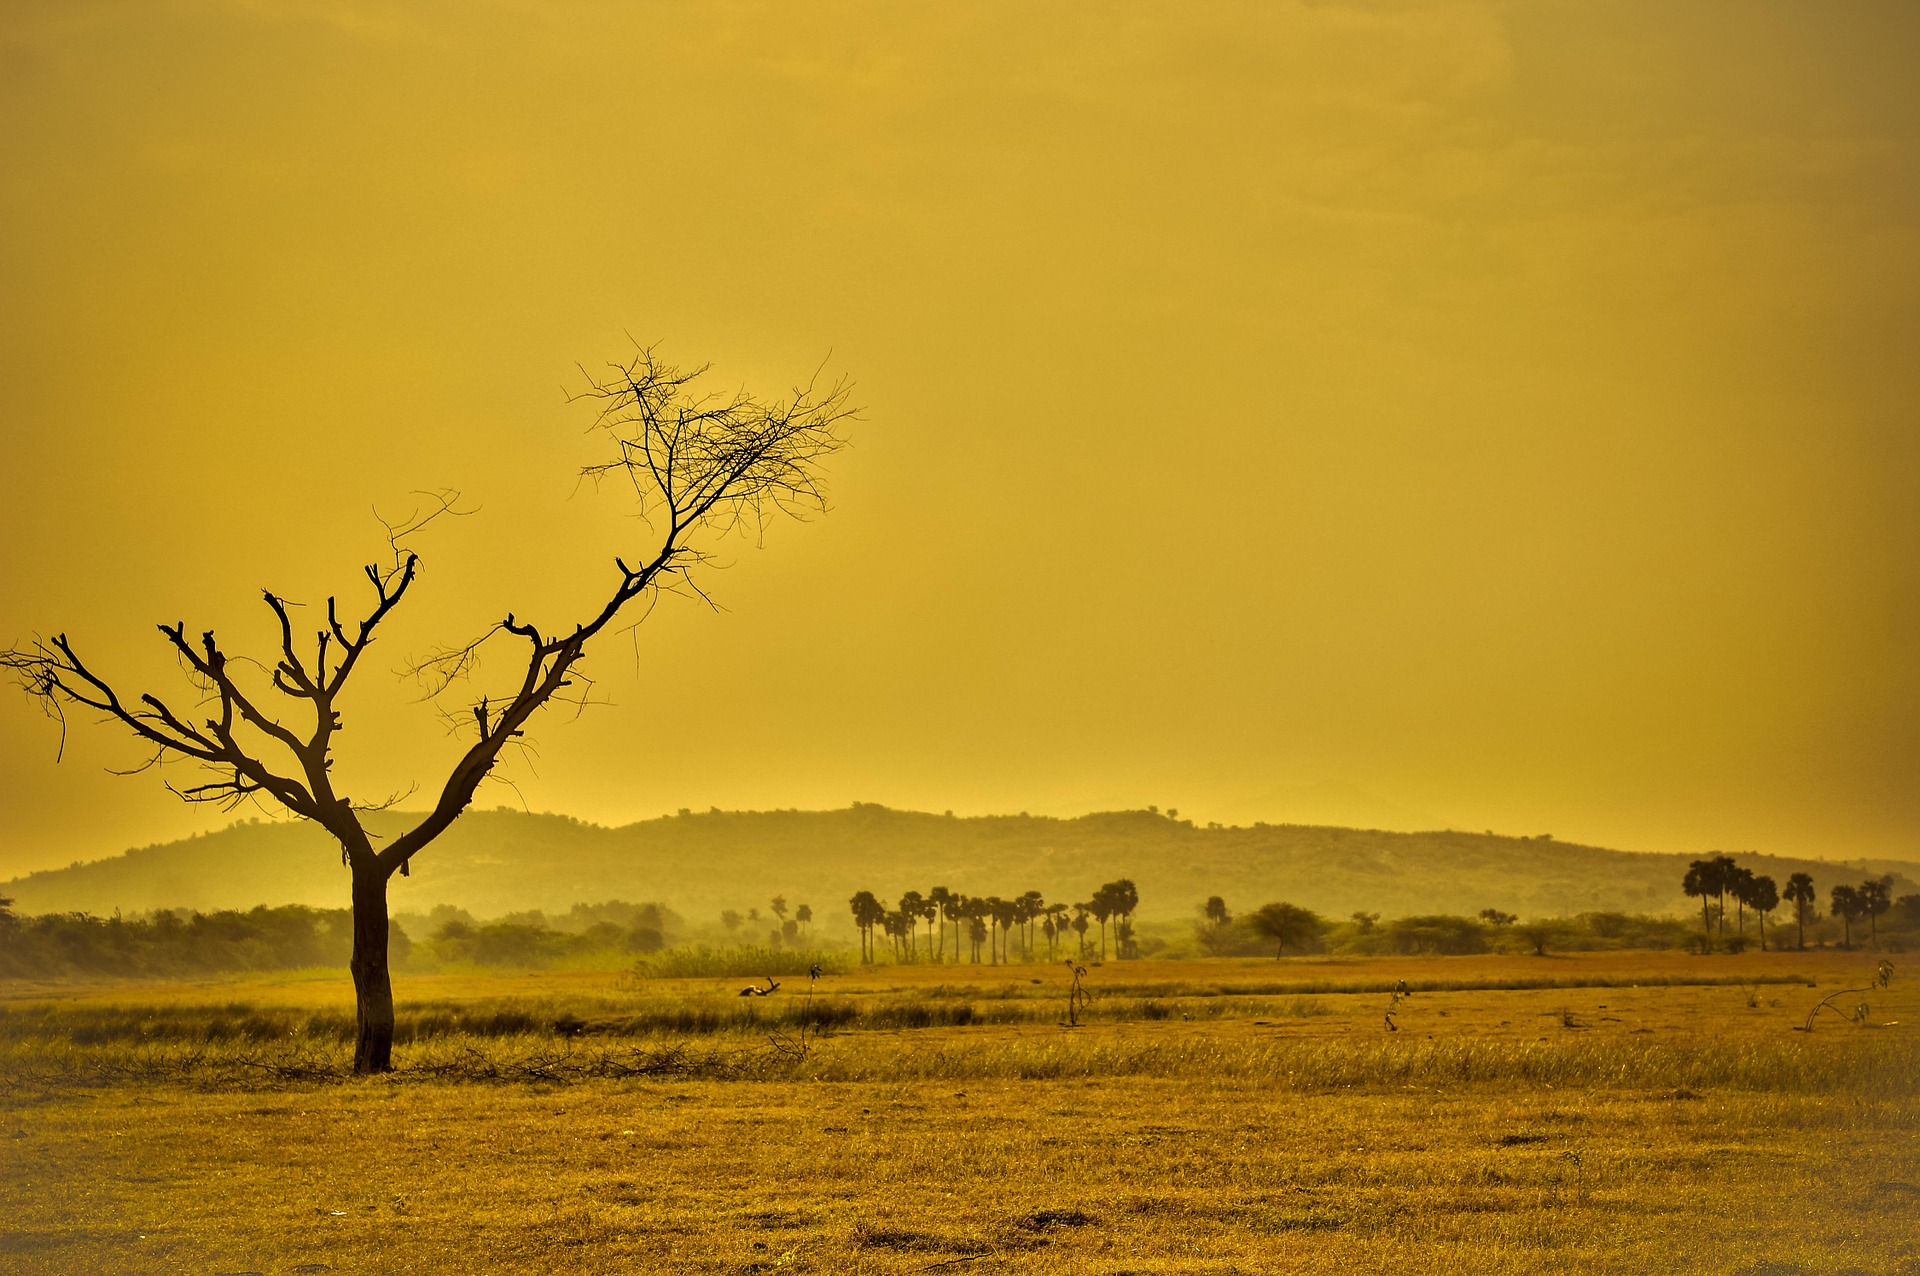 Hot and Dry environment